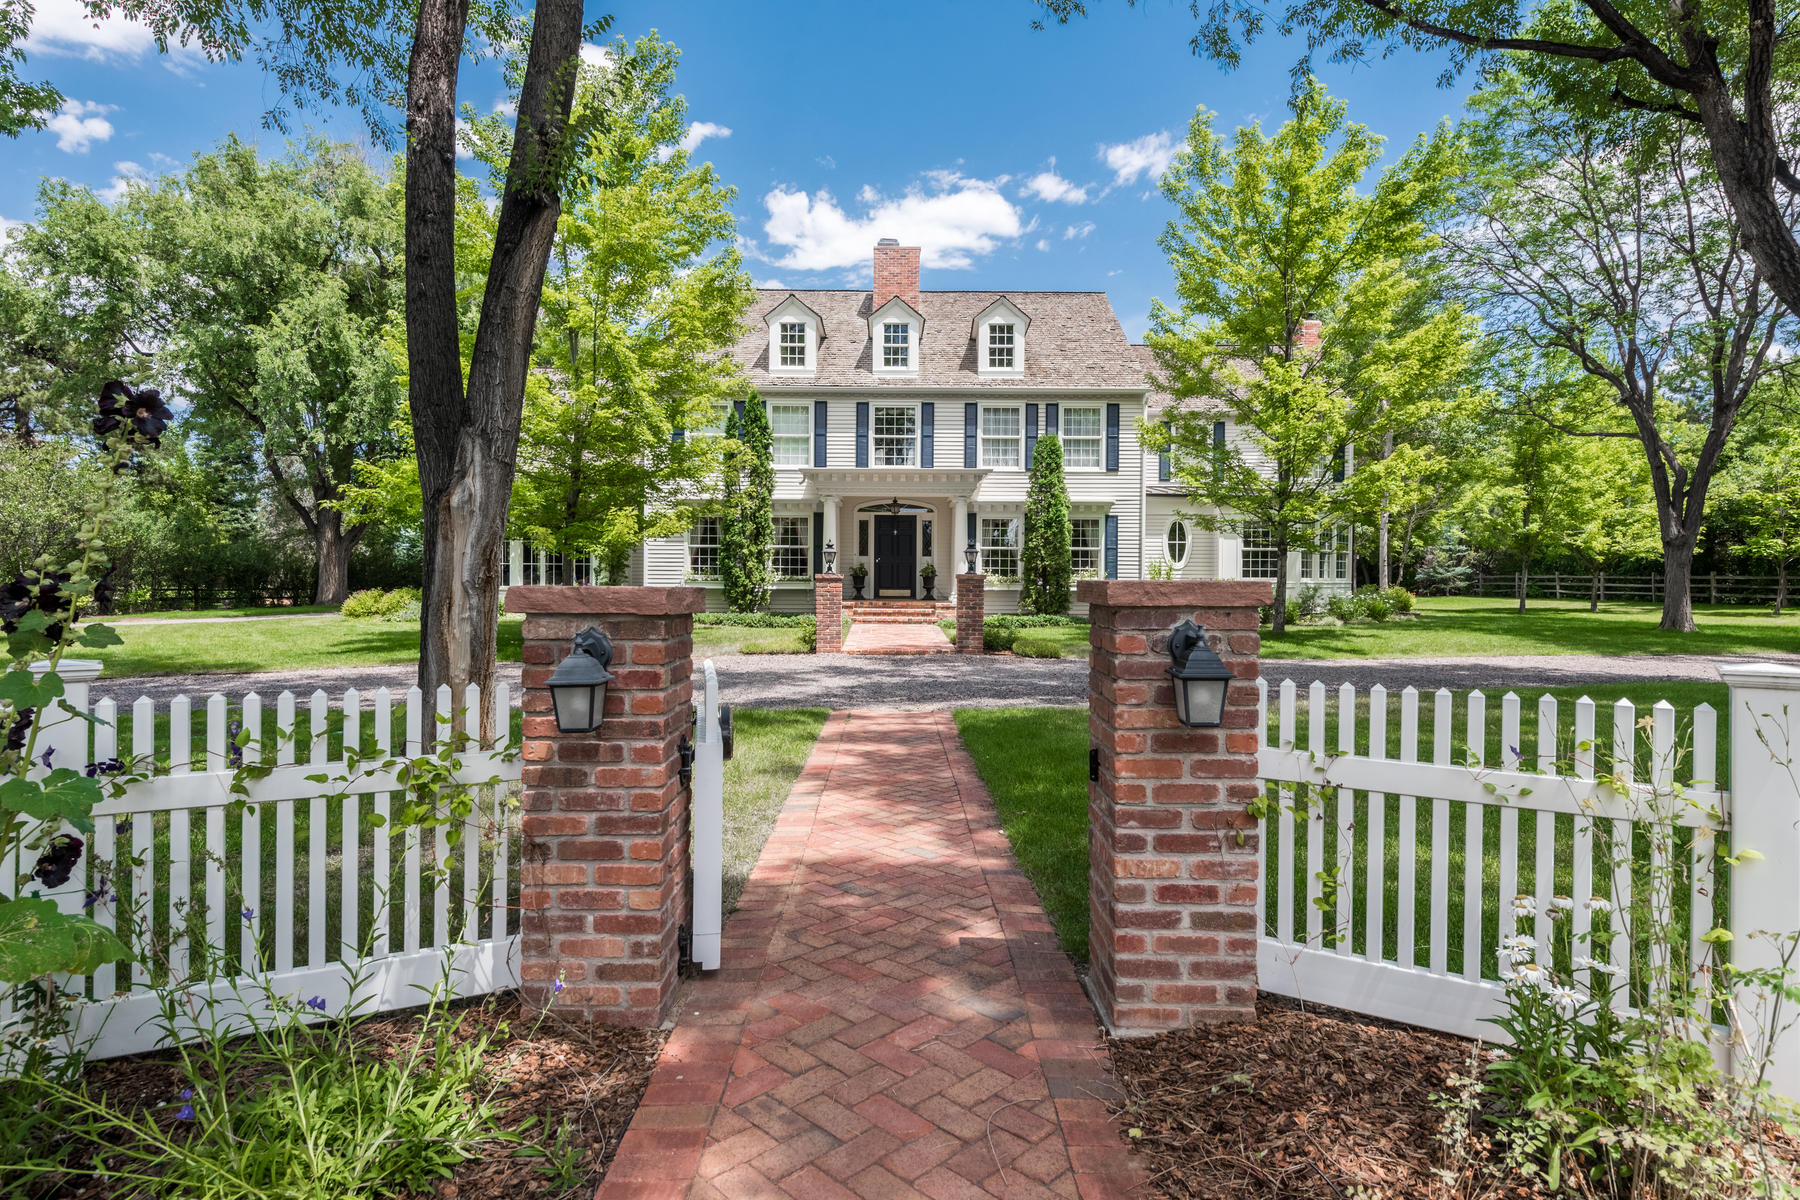 Single Family Home for Active at This elegant country manor is richly appointed and recently updated throughout 4682 S Franklin St Englewood, Colorado 80113 United States